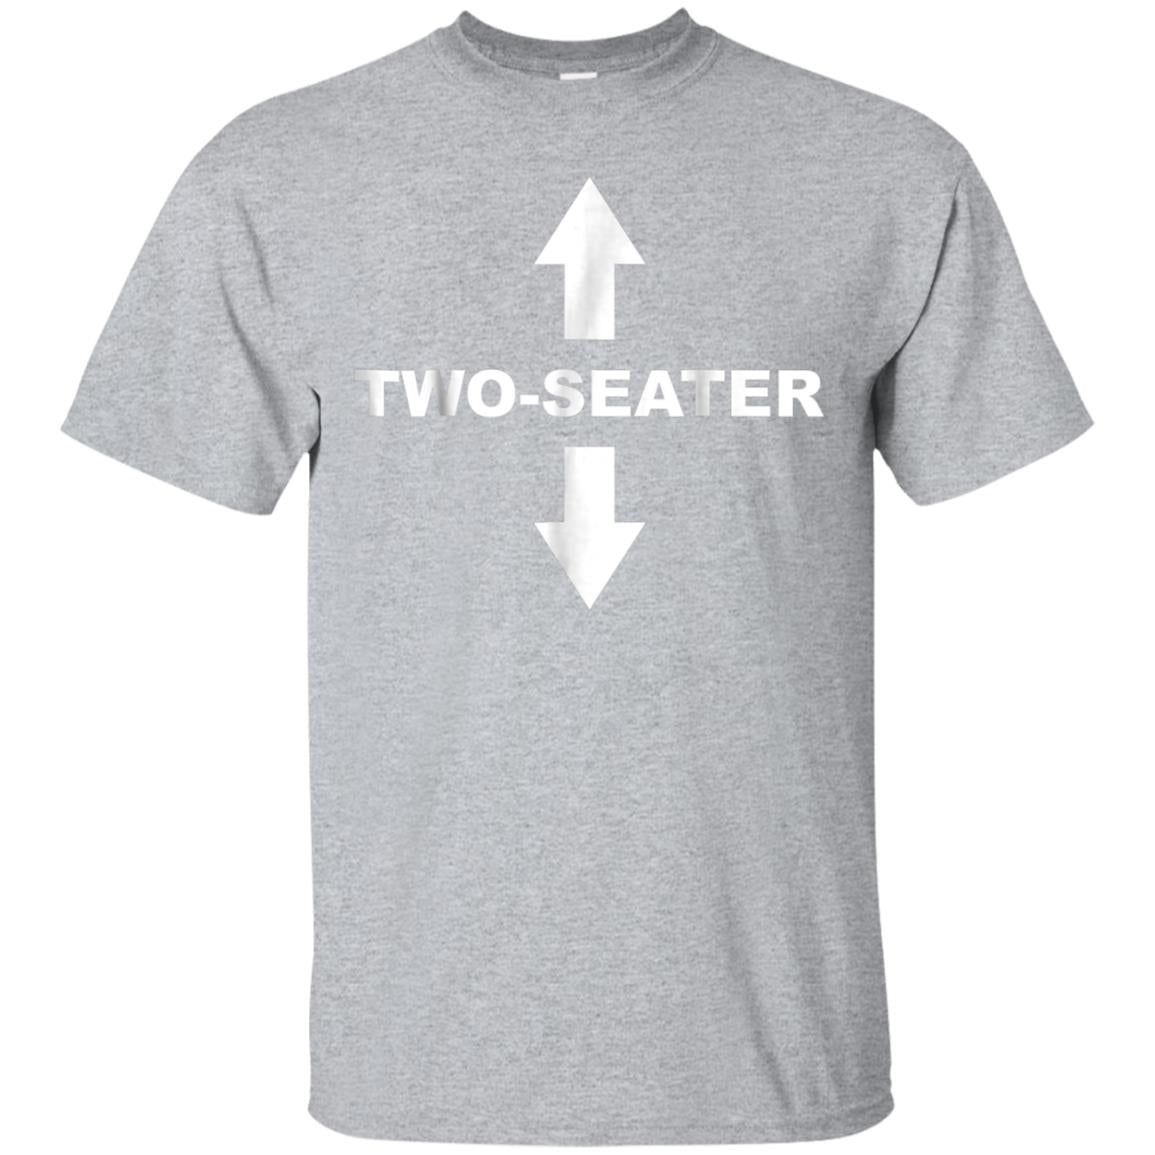 Two Seater T-shirt Best Funny Outing Men Women Kids Gift 99promocode